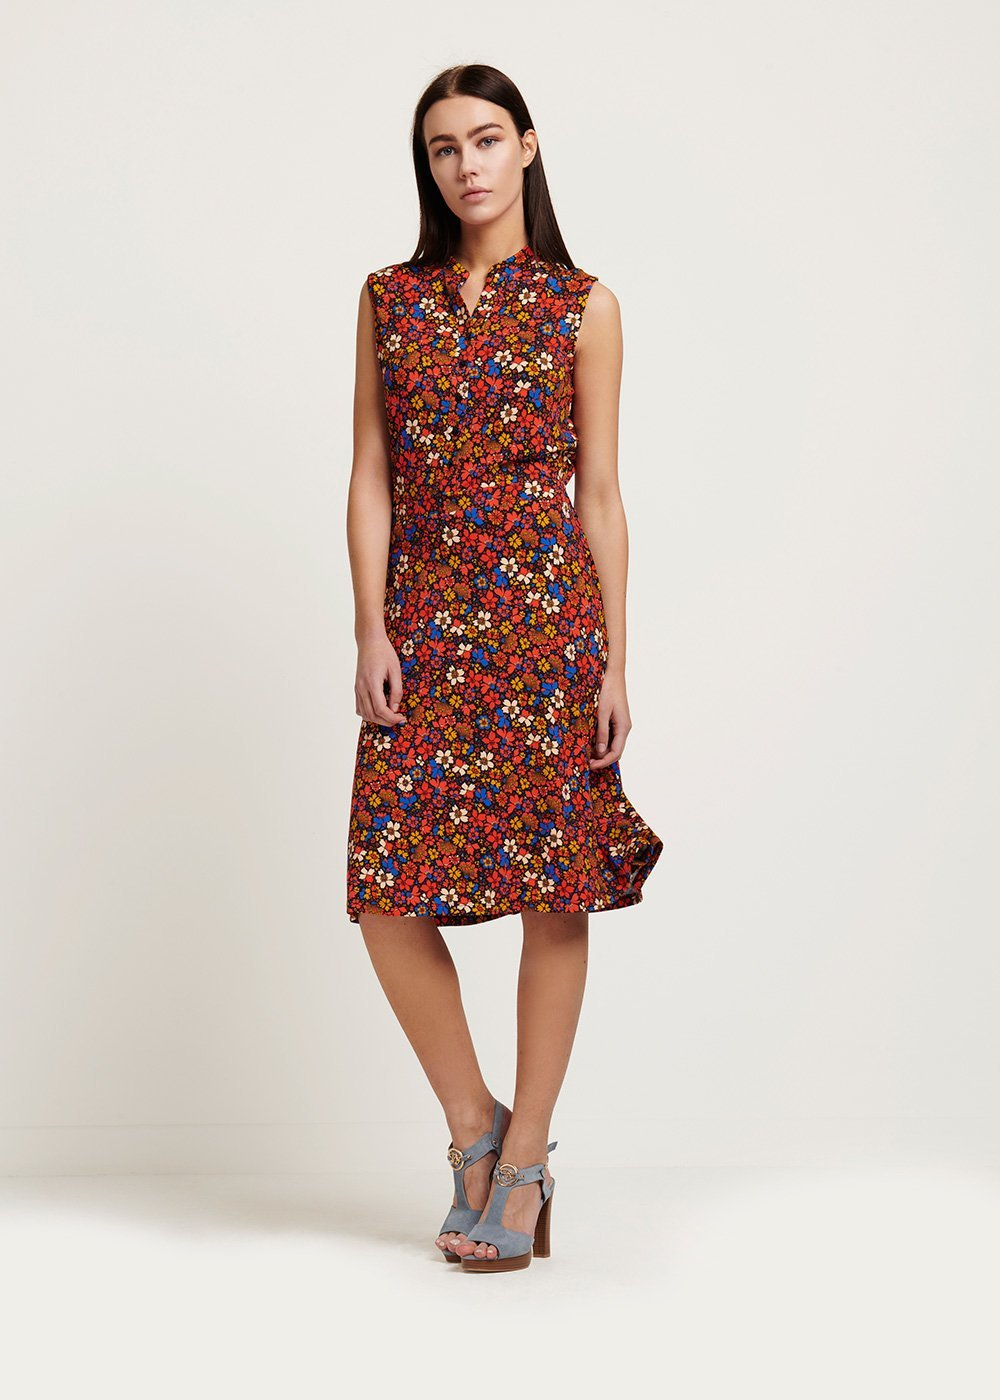 Arlen dress with mixed colours - Black / Aragosta / Fantasia - Woman